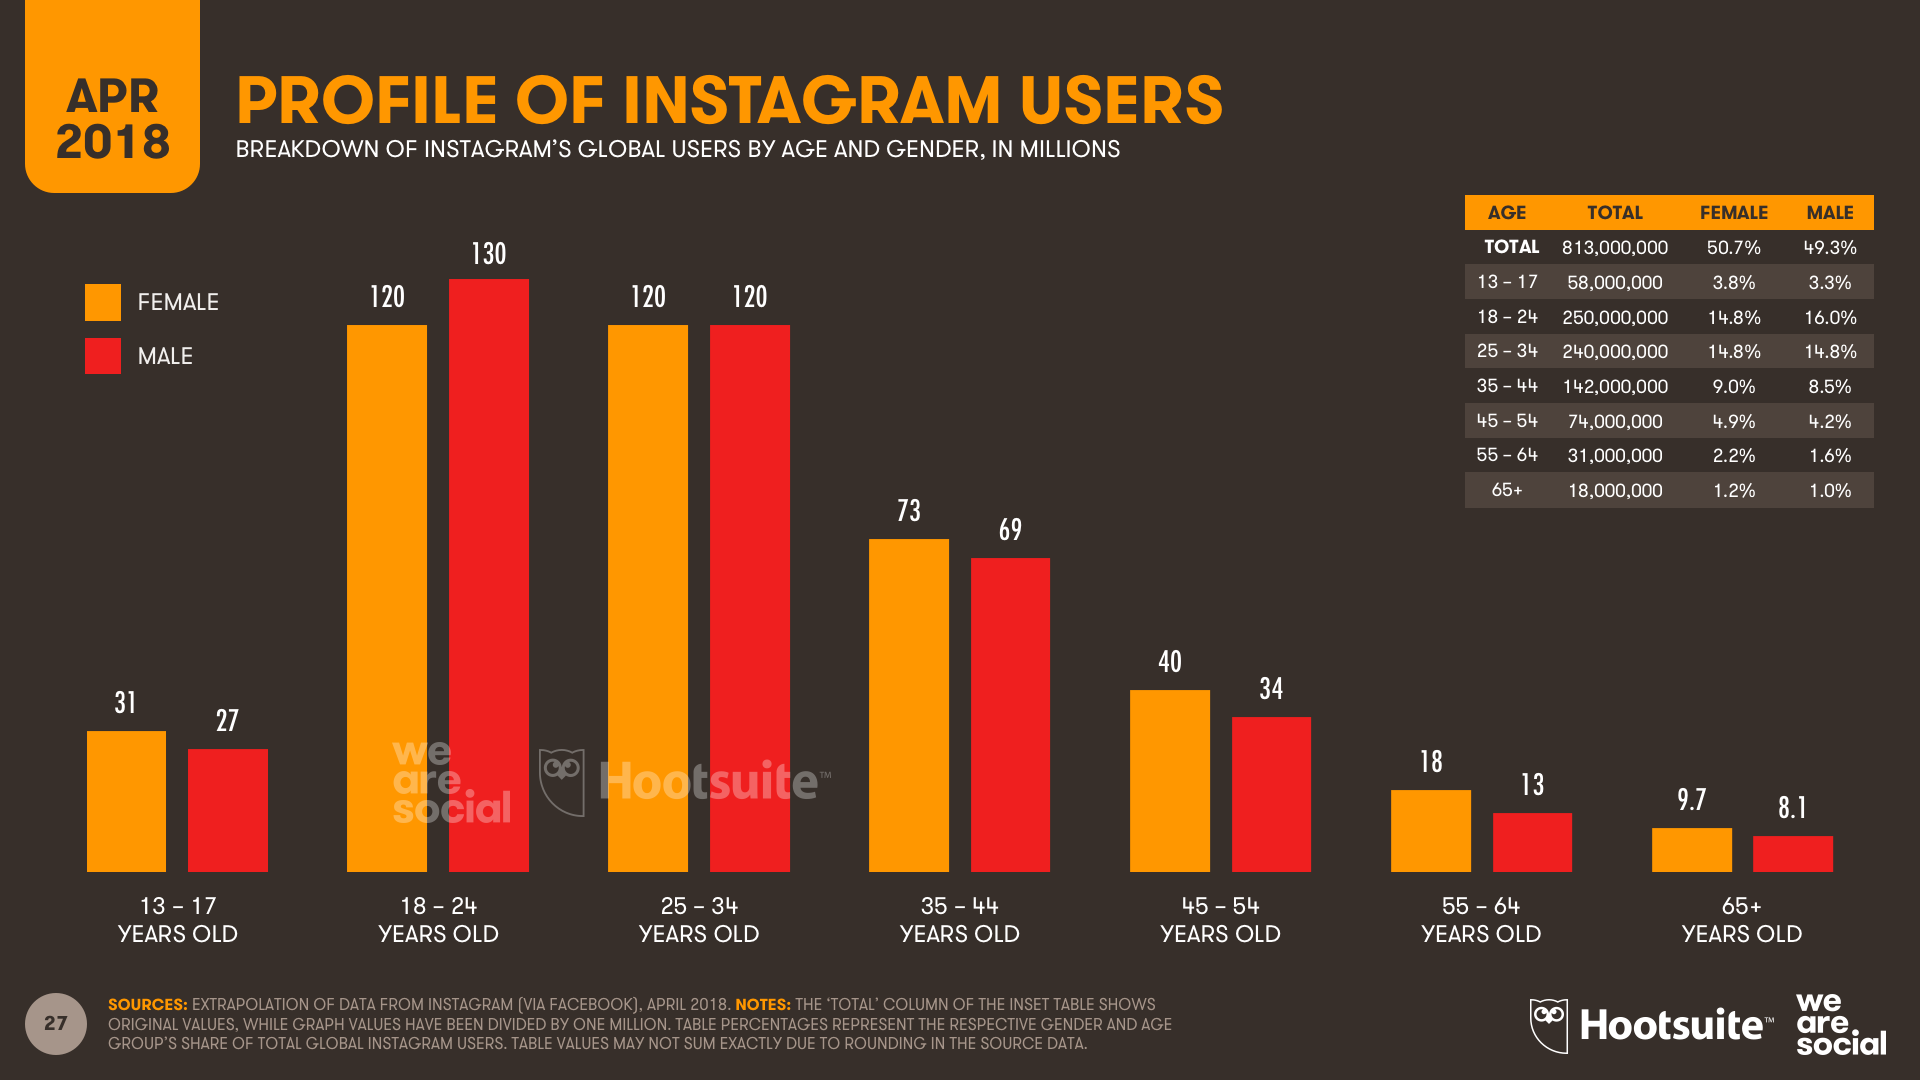 Profile of Instagram Users by Age and Gender, April 2018